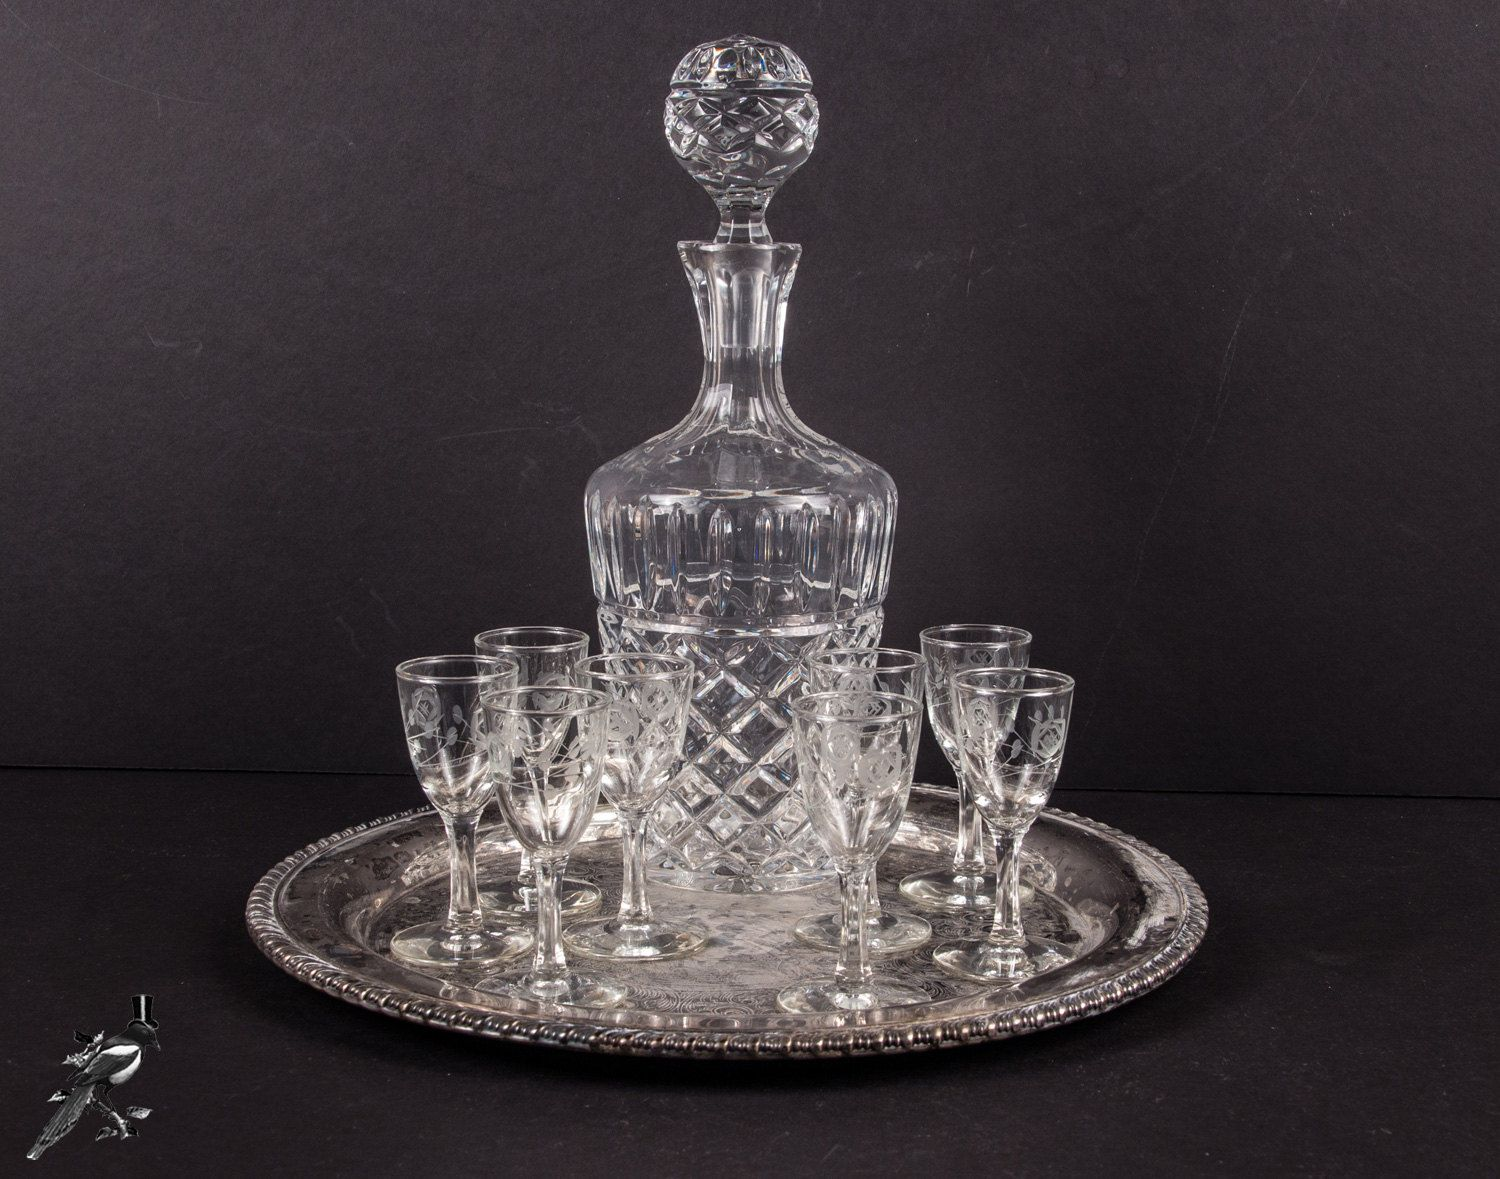 TheCordialMagpie On Etsy: Vintage Barware Set: 8 Cordial/Sherry/Liquor  Glasses Crystal